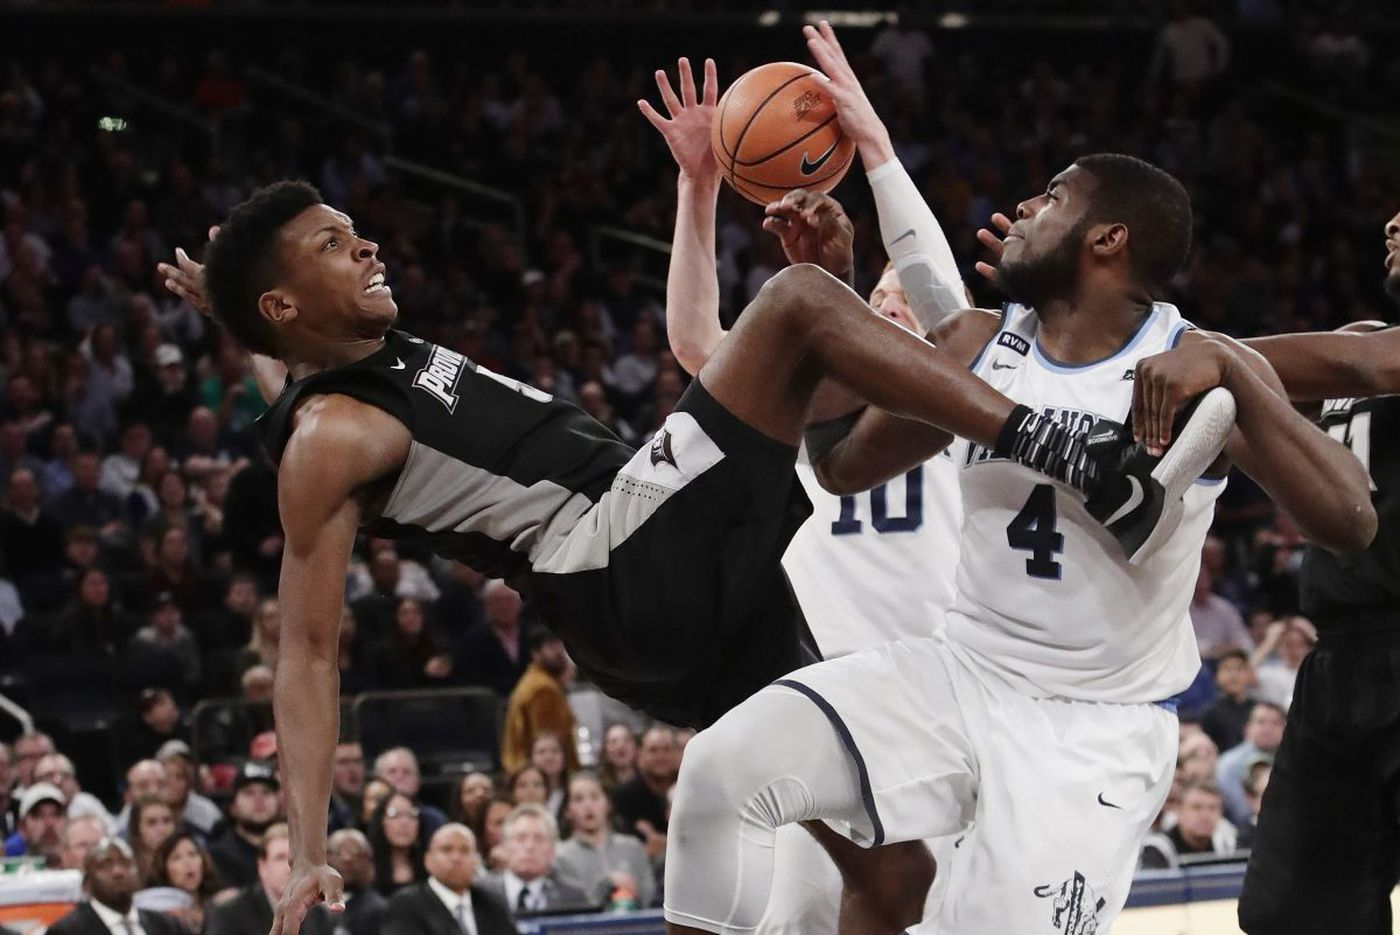 For Villanova's Eric Paschall, defense is the name of the game